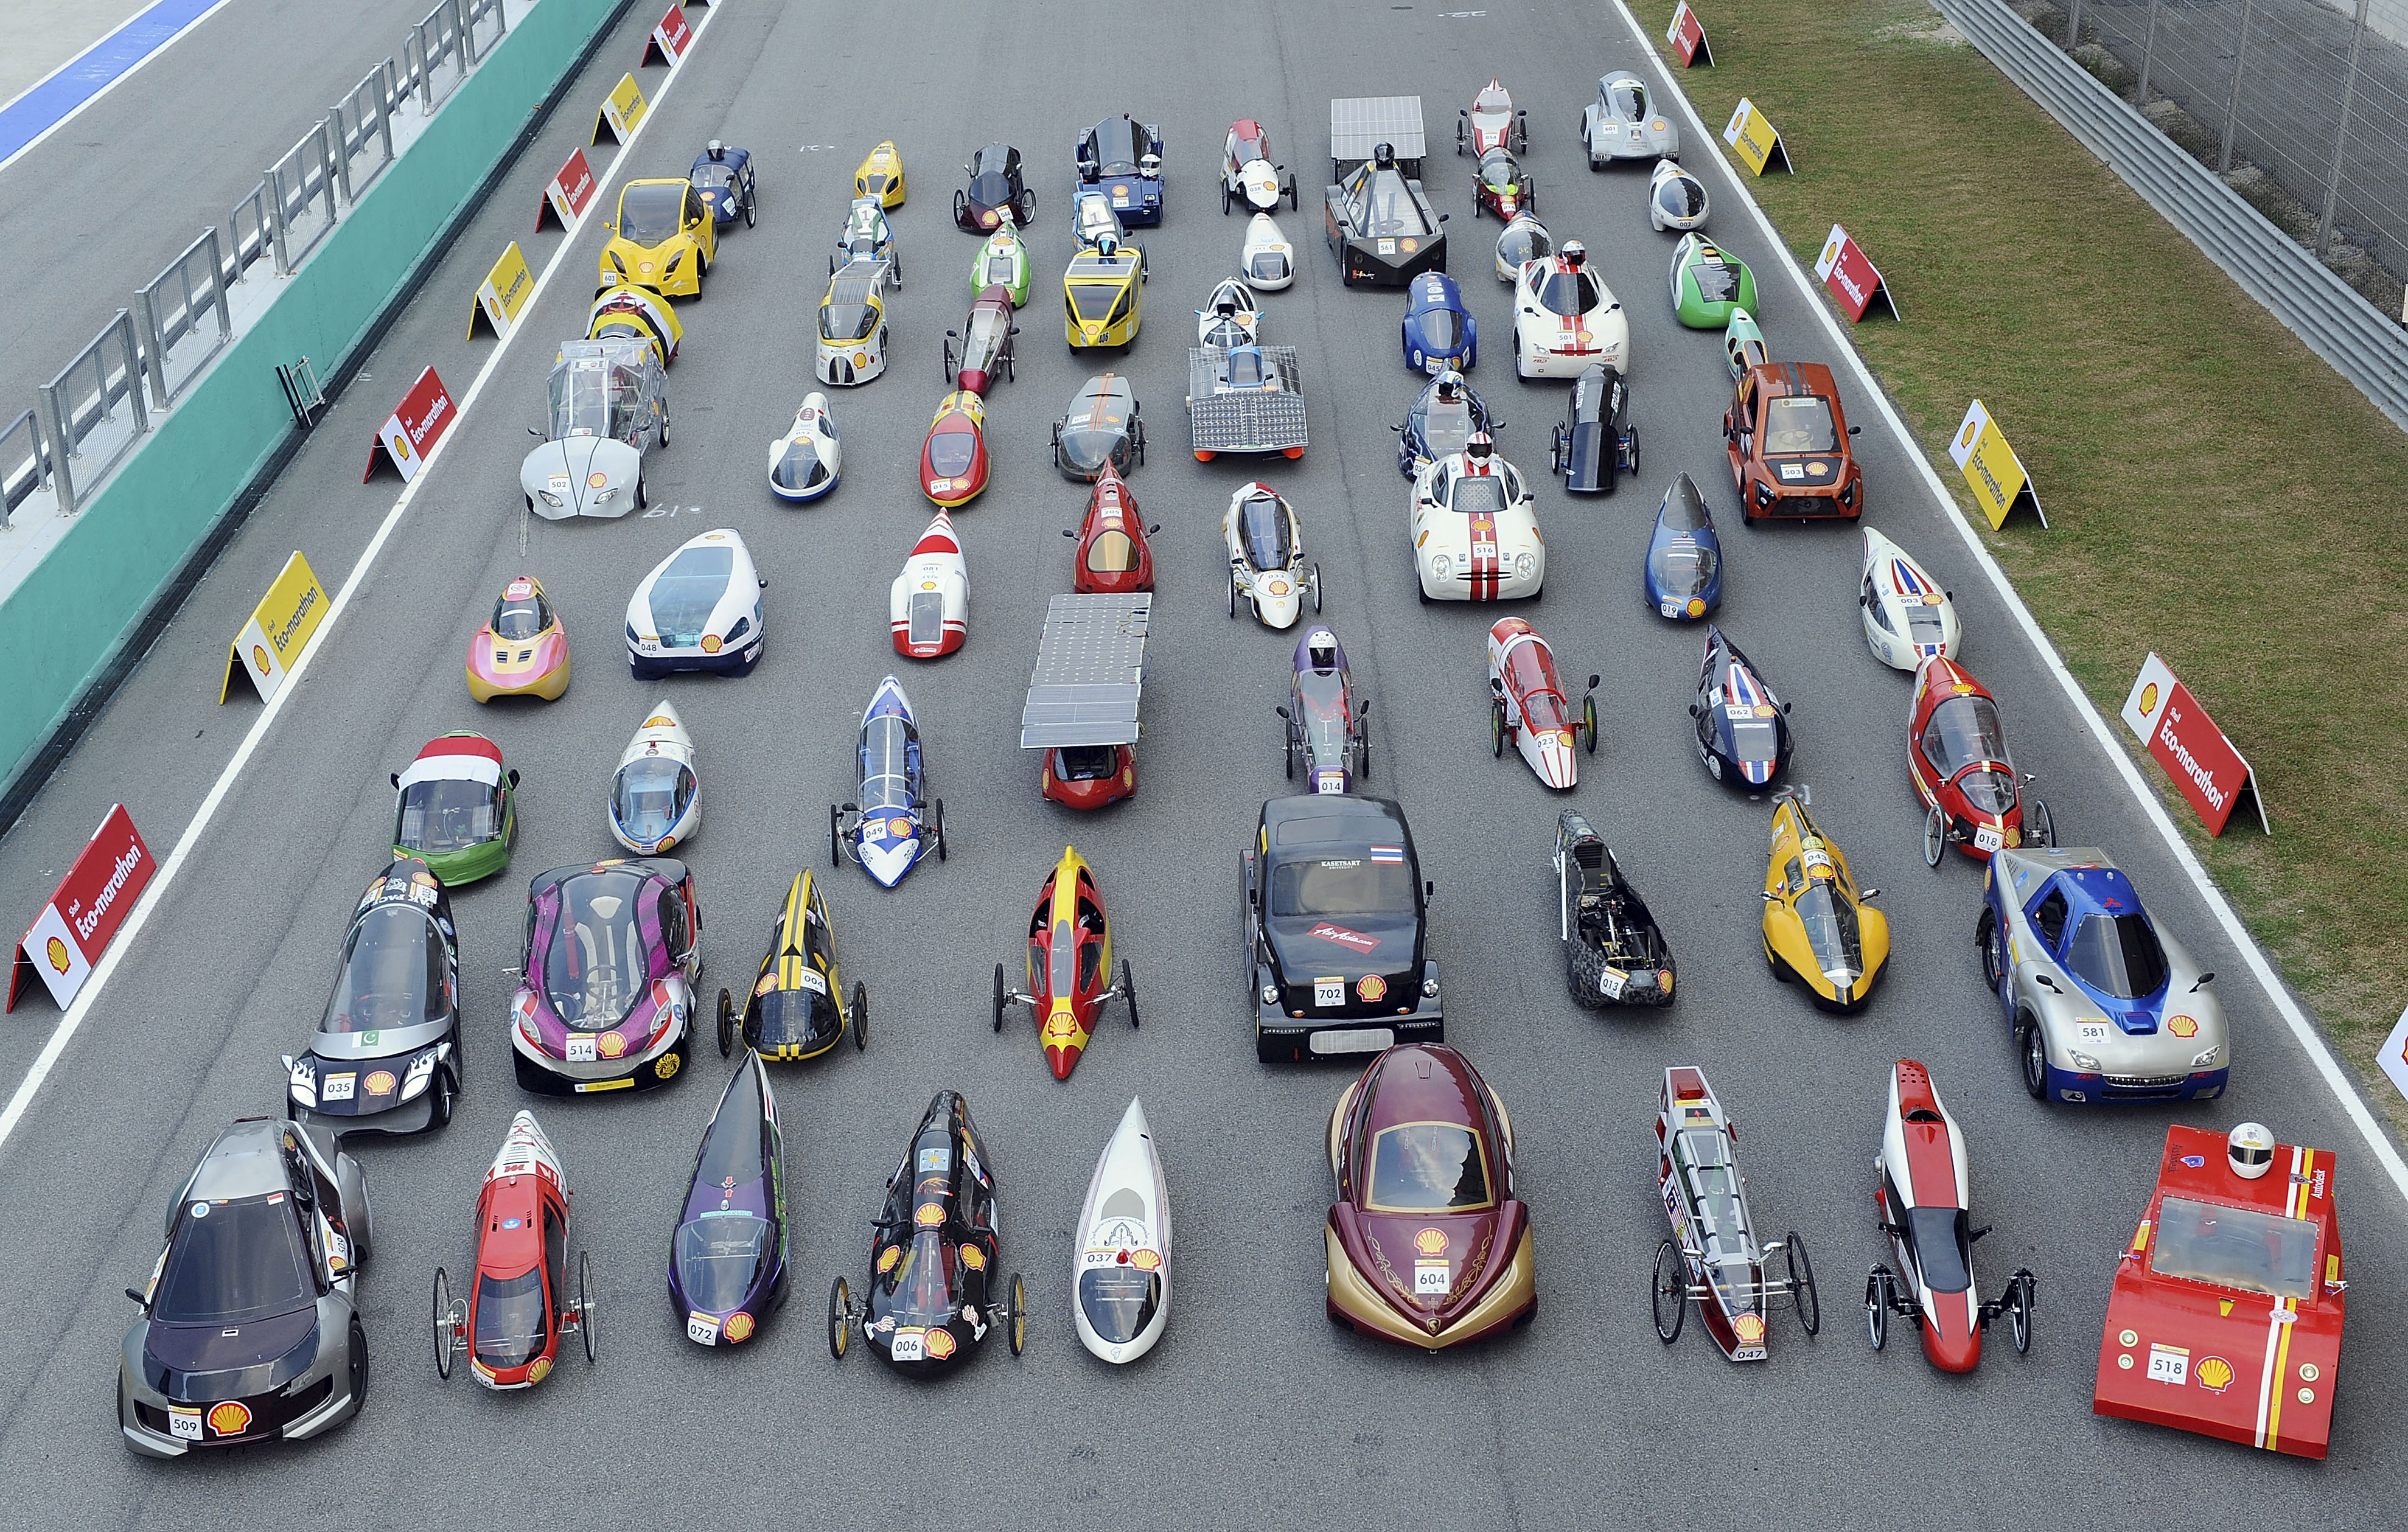 Shell Eco-marathon Asia 2011 In this handout image provided by Shell via AP Images, cars are lined up on the track for a group photo during registration day for the Shell Eco-marathon energy efficiency challenge at Sepang Internation Circuit in Sepang, Malaysia, Wednesday, July 6, 2011. Teams from all over Asia arrived for test day while their cars were put through technical and safety checks to make ready for the ensuing challenge. (Abdul ghani khan/Shell via AP Images